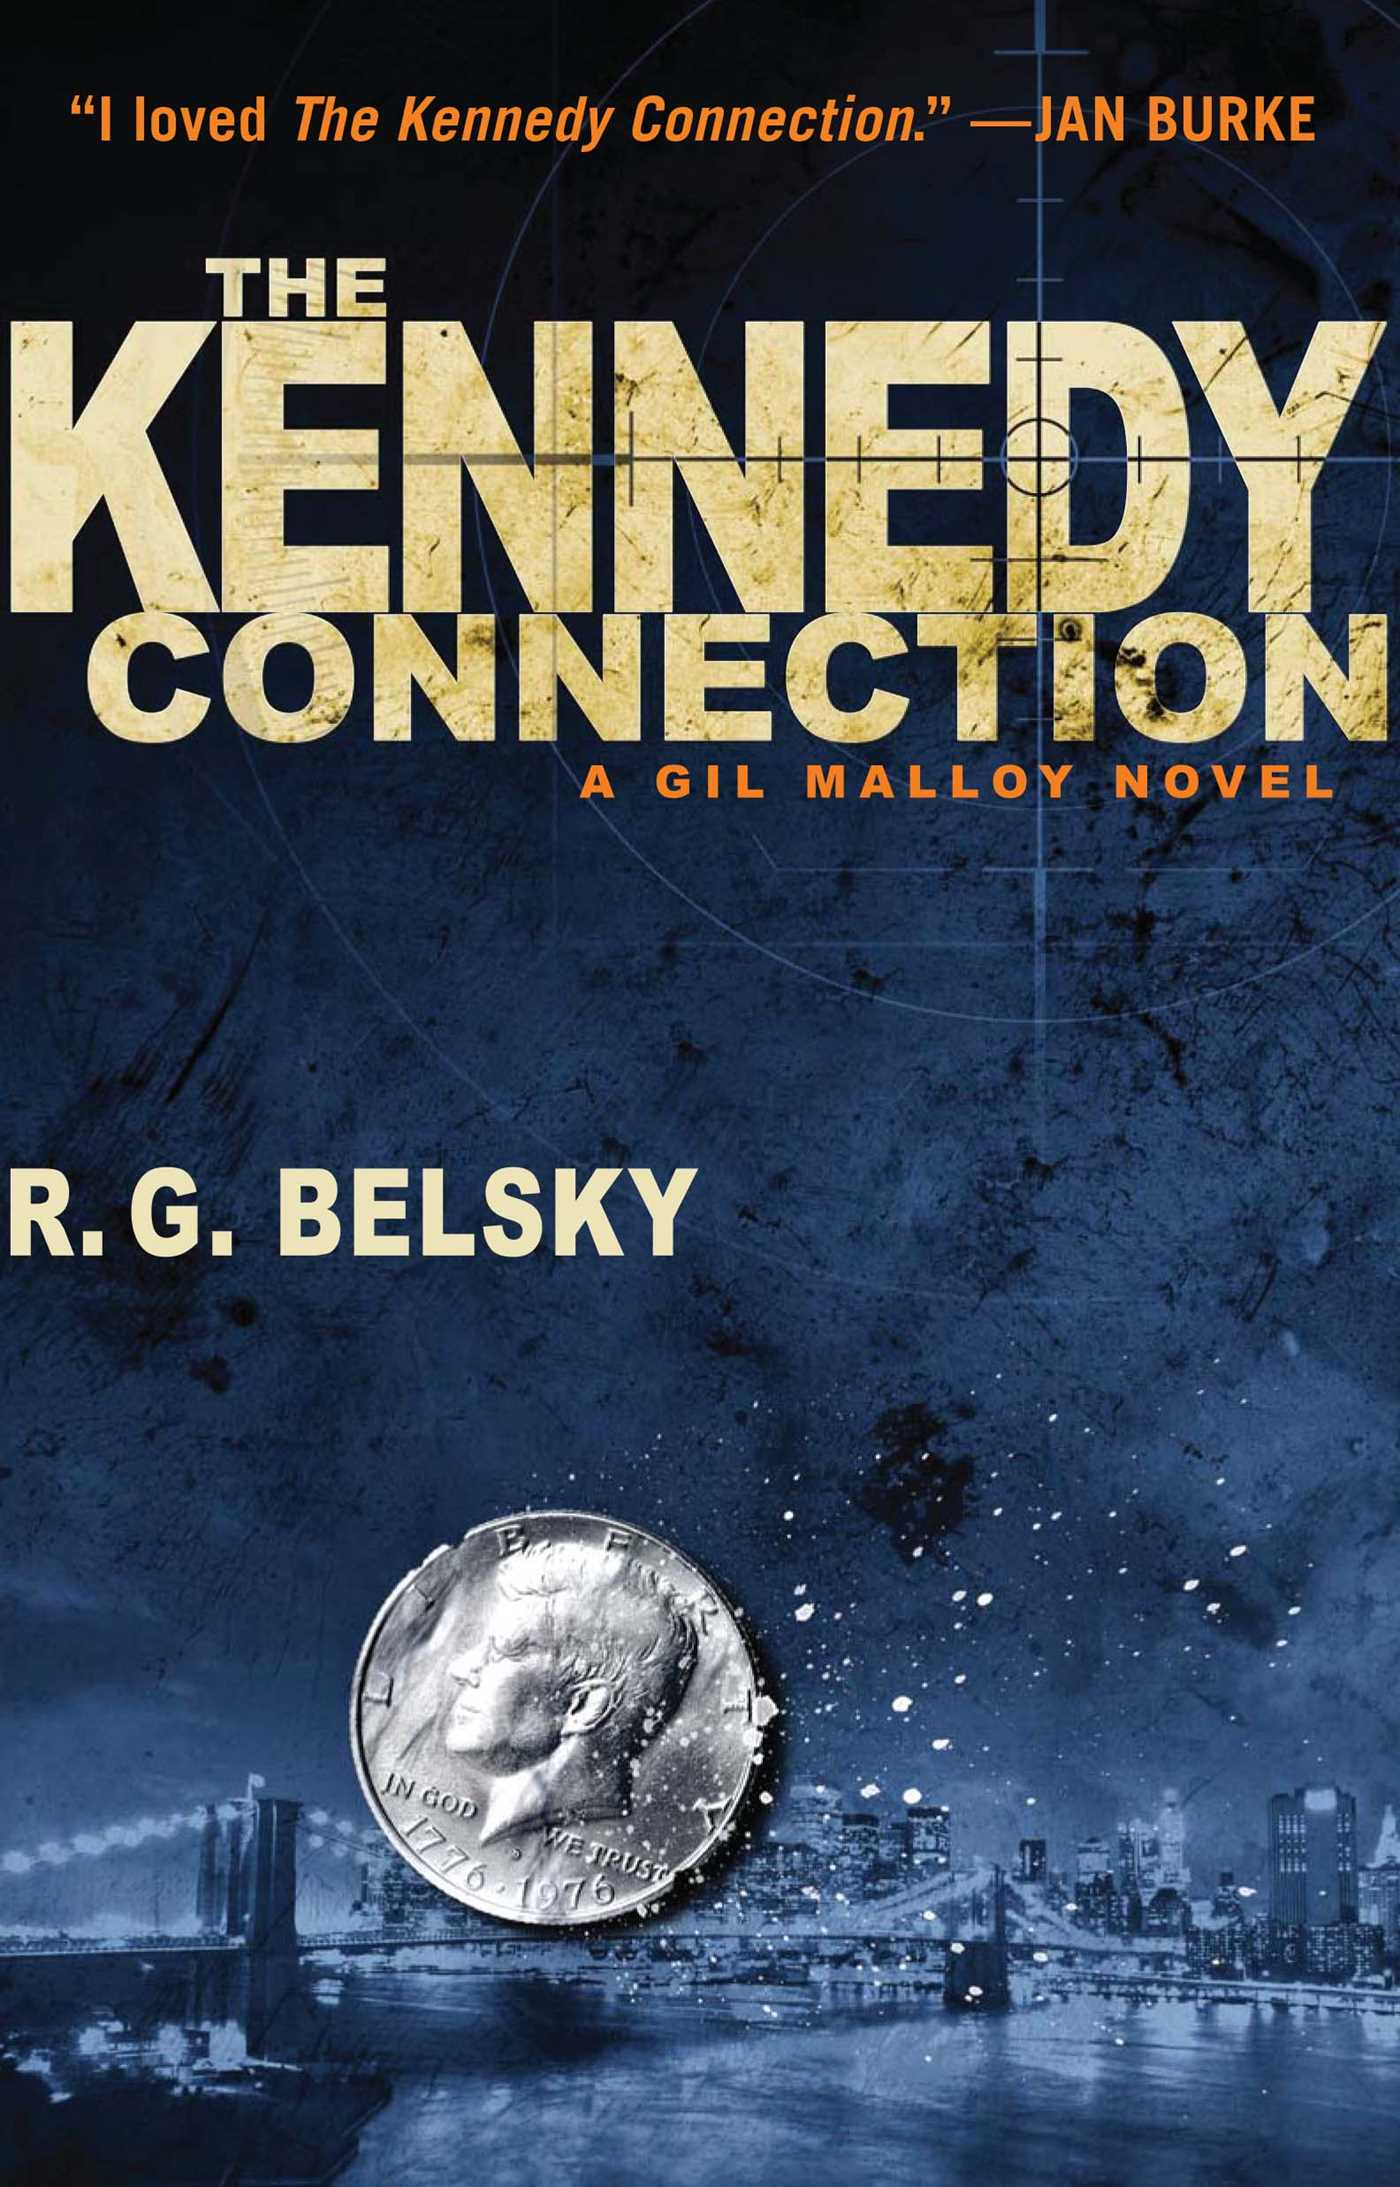 The kennedy connection 9781476762326 hr